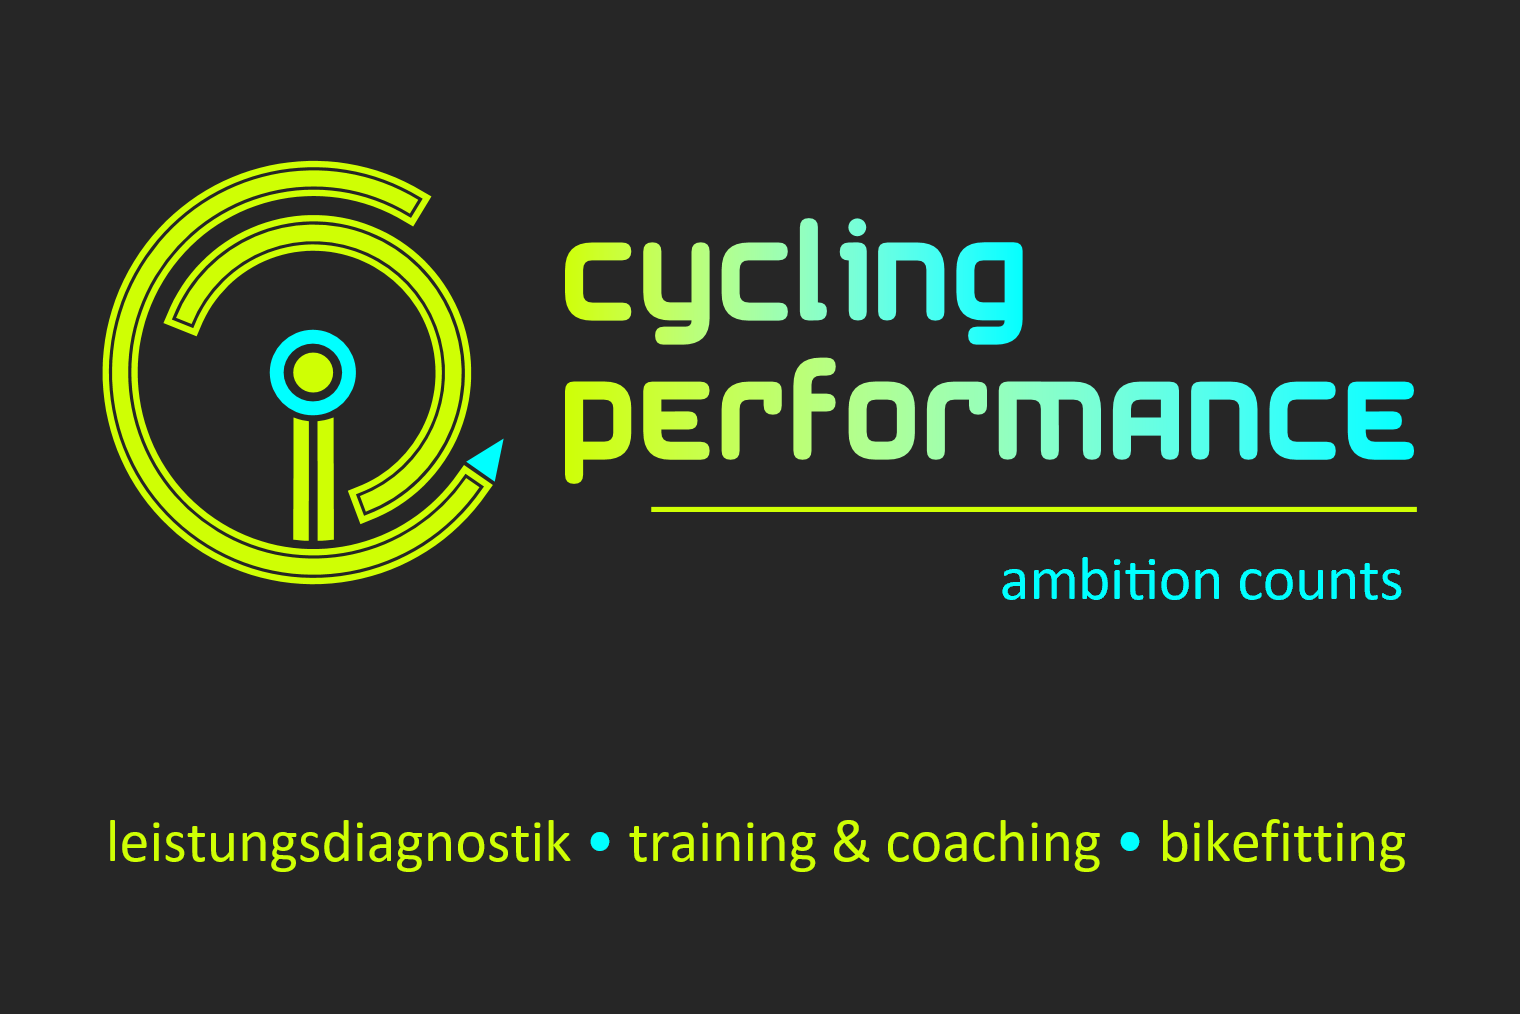 Cycling Performance